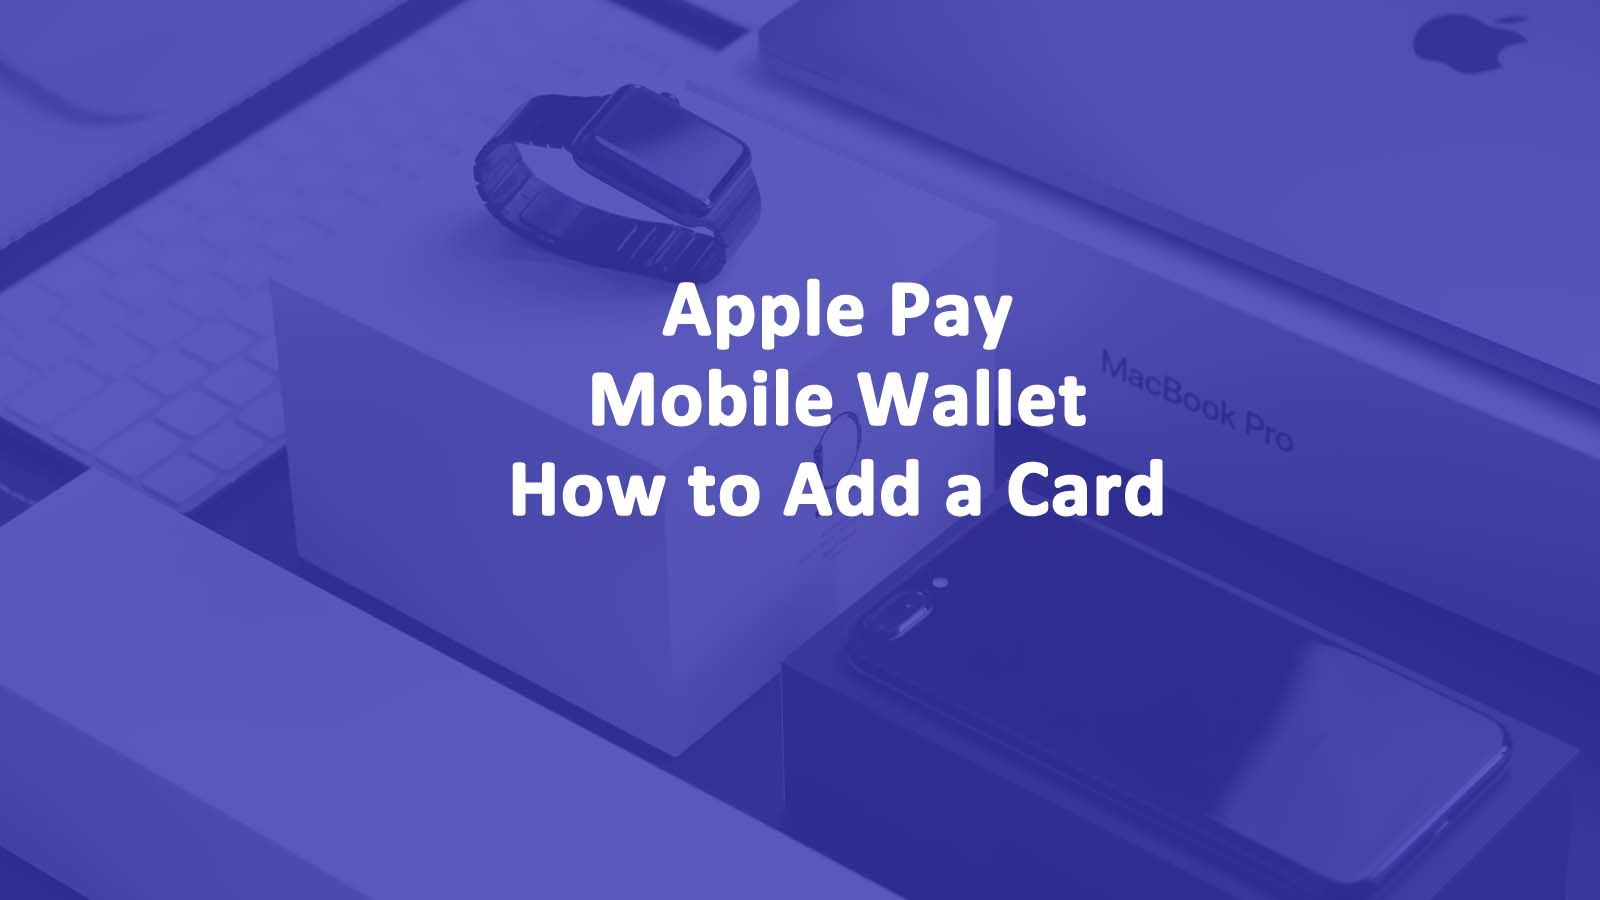 Apple pay mobile wallet how to add a card